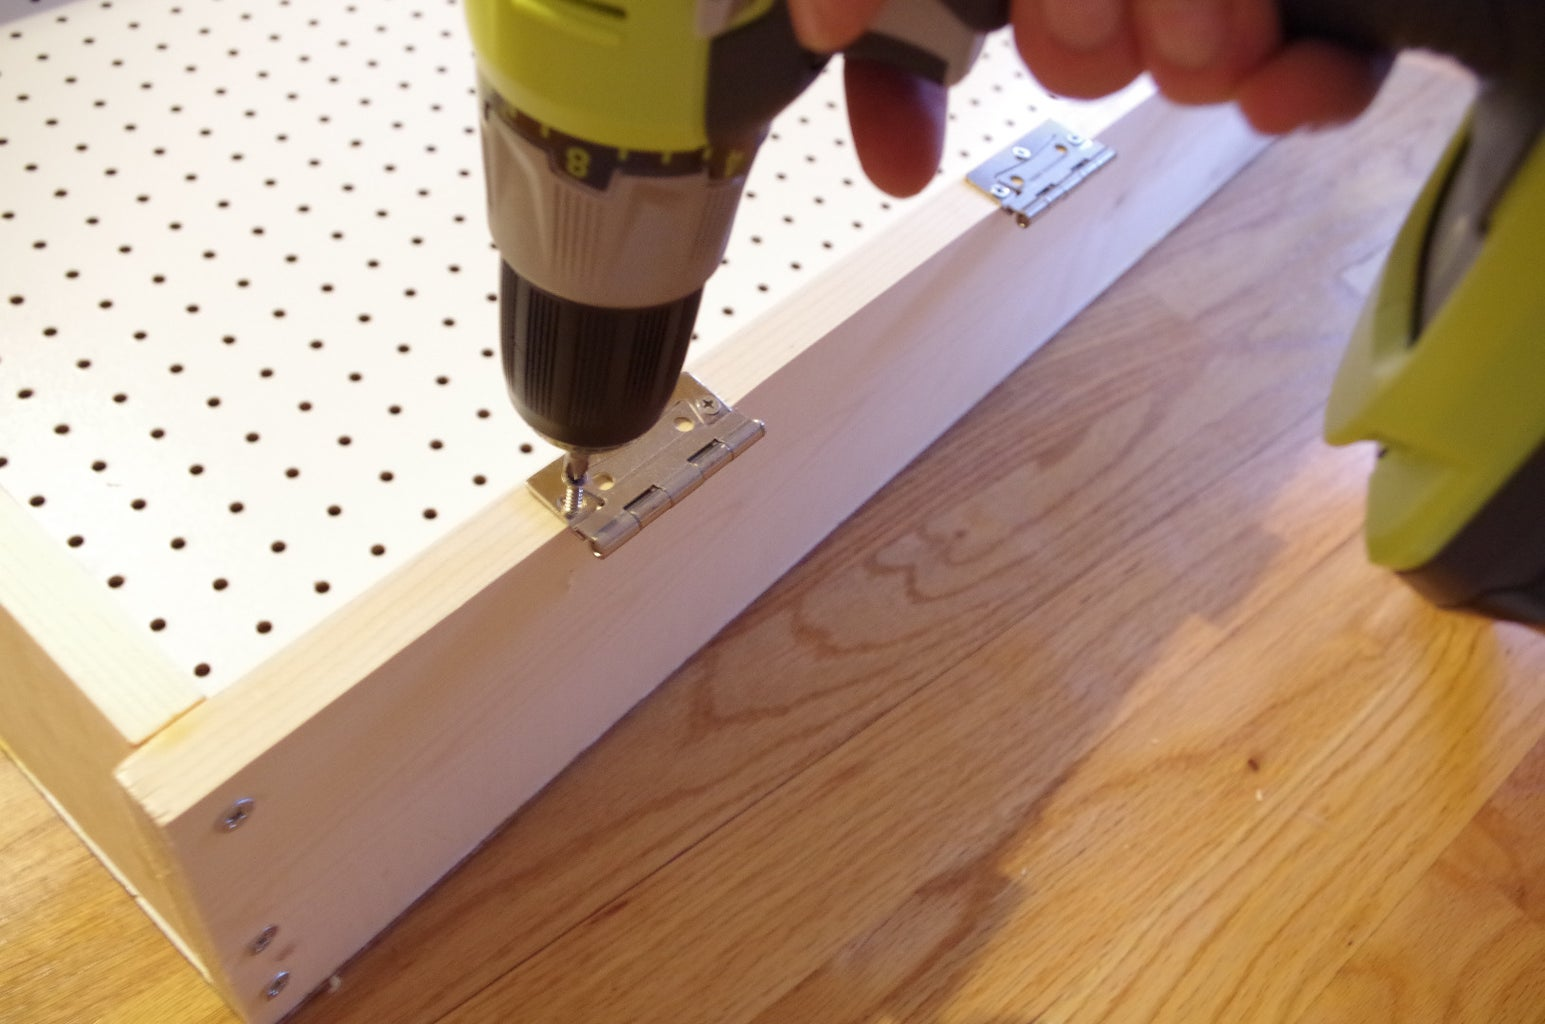 Attaching the Hinges and Catch